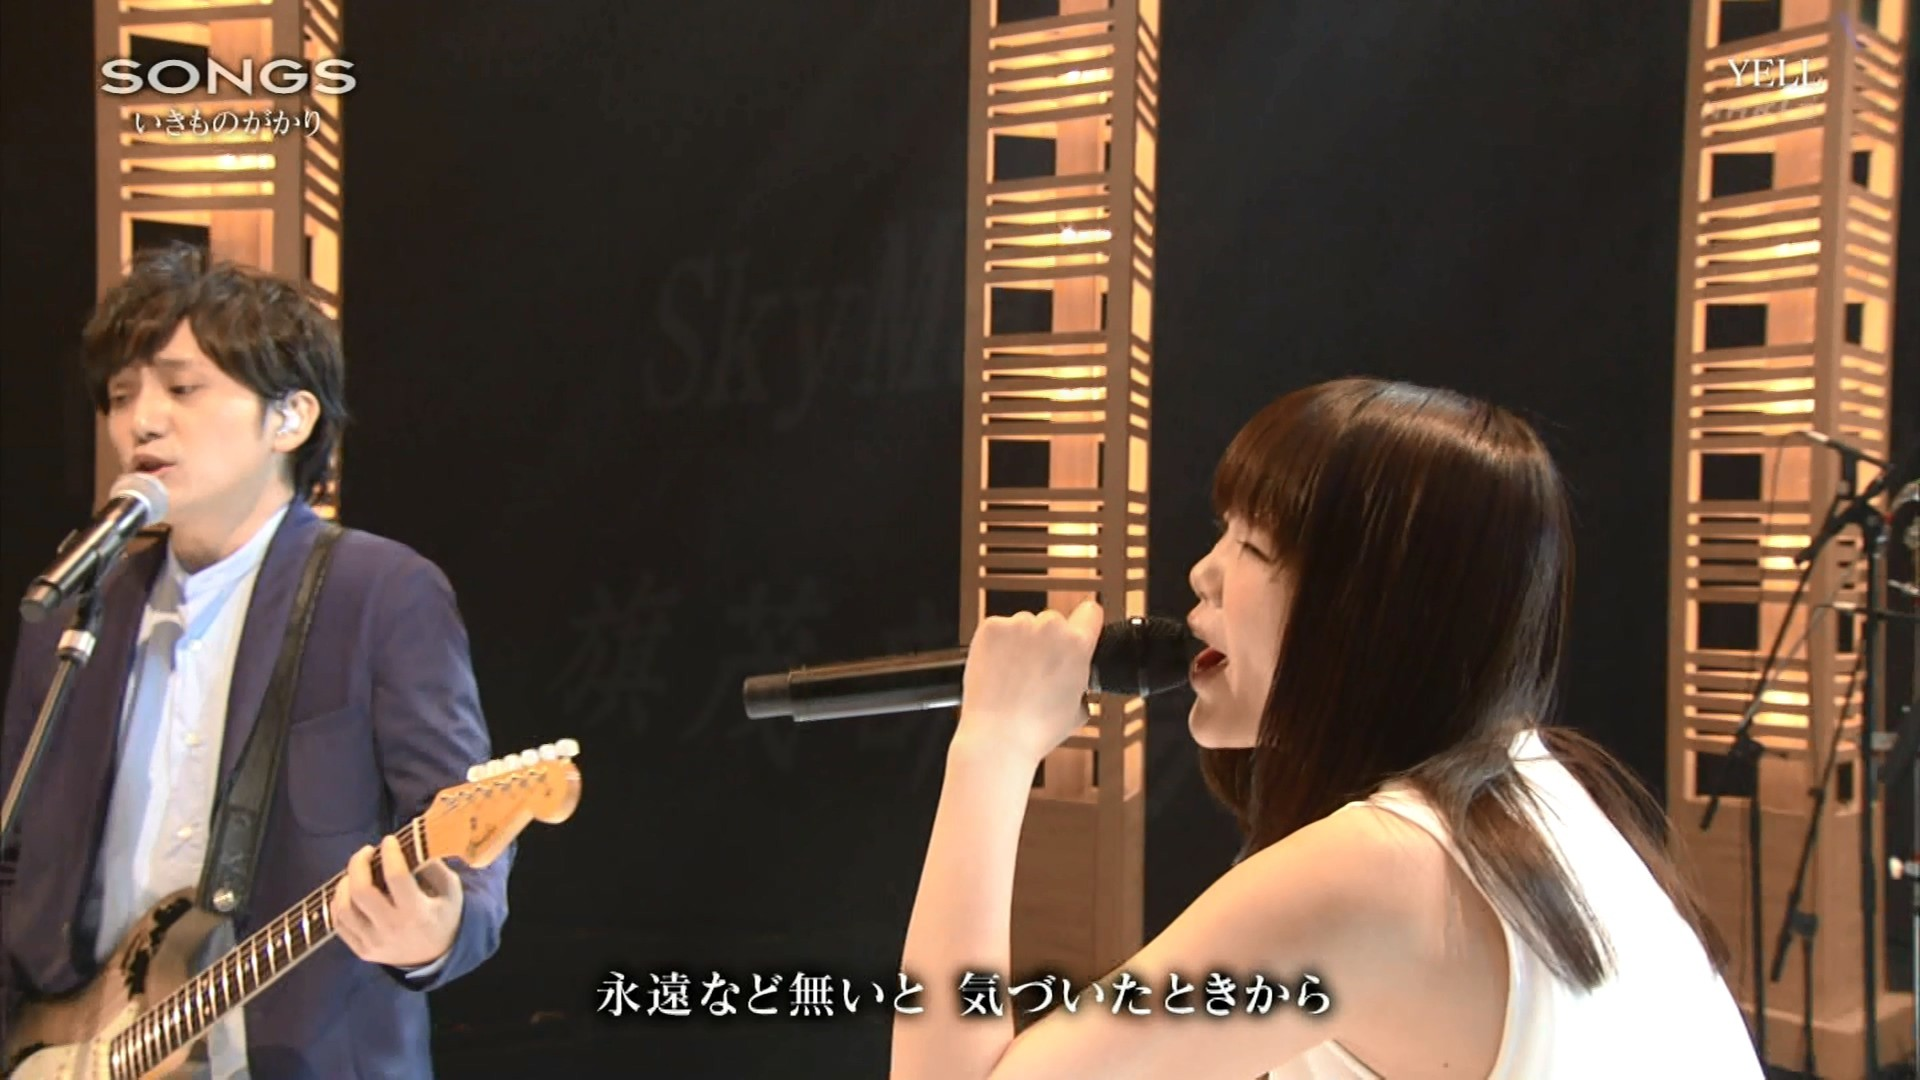 2016.04.28 全場(SONGS).ts_20160428_233010.404